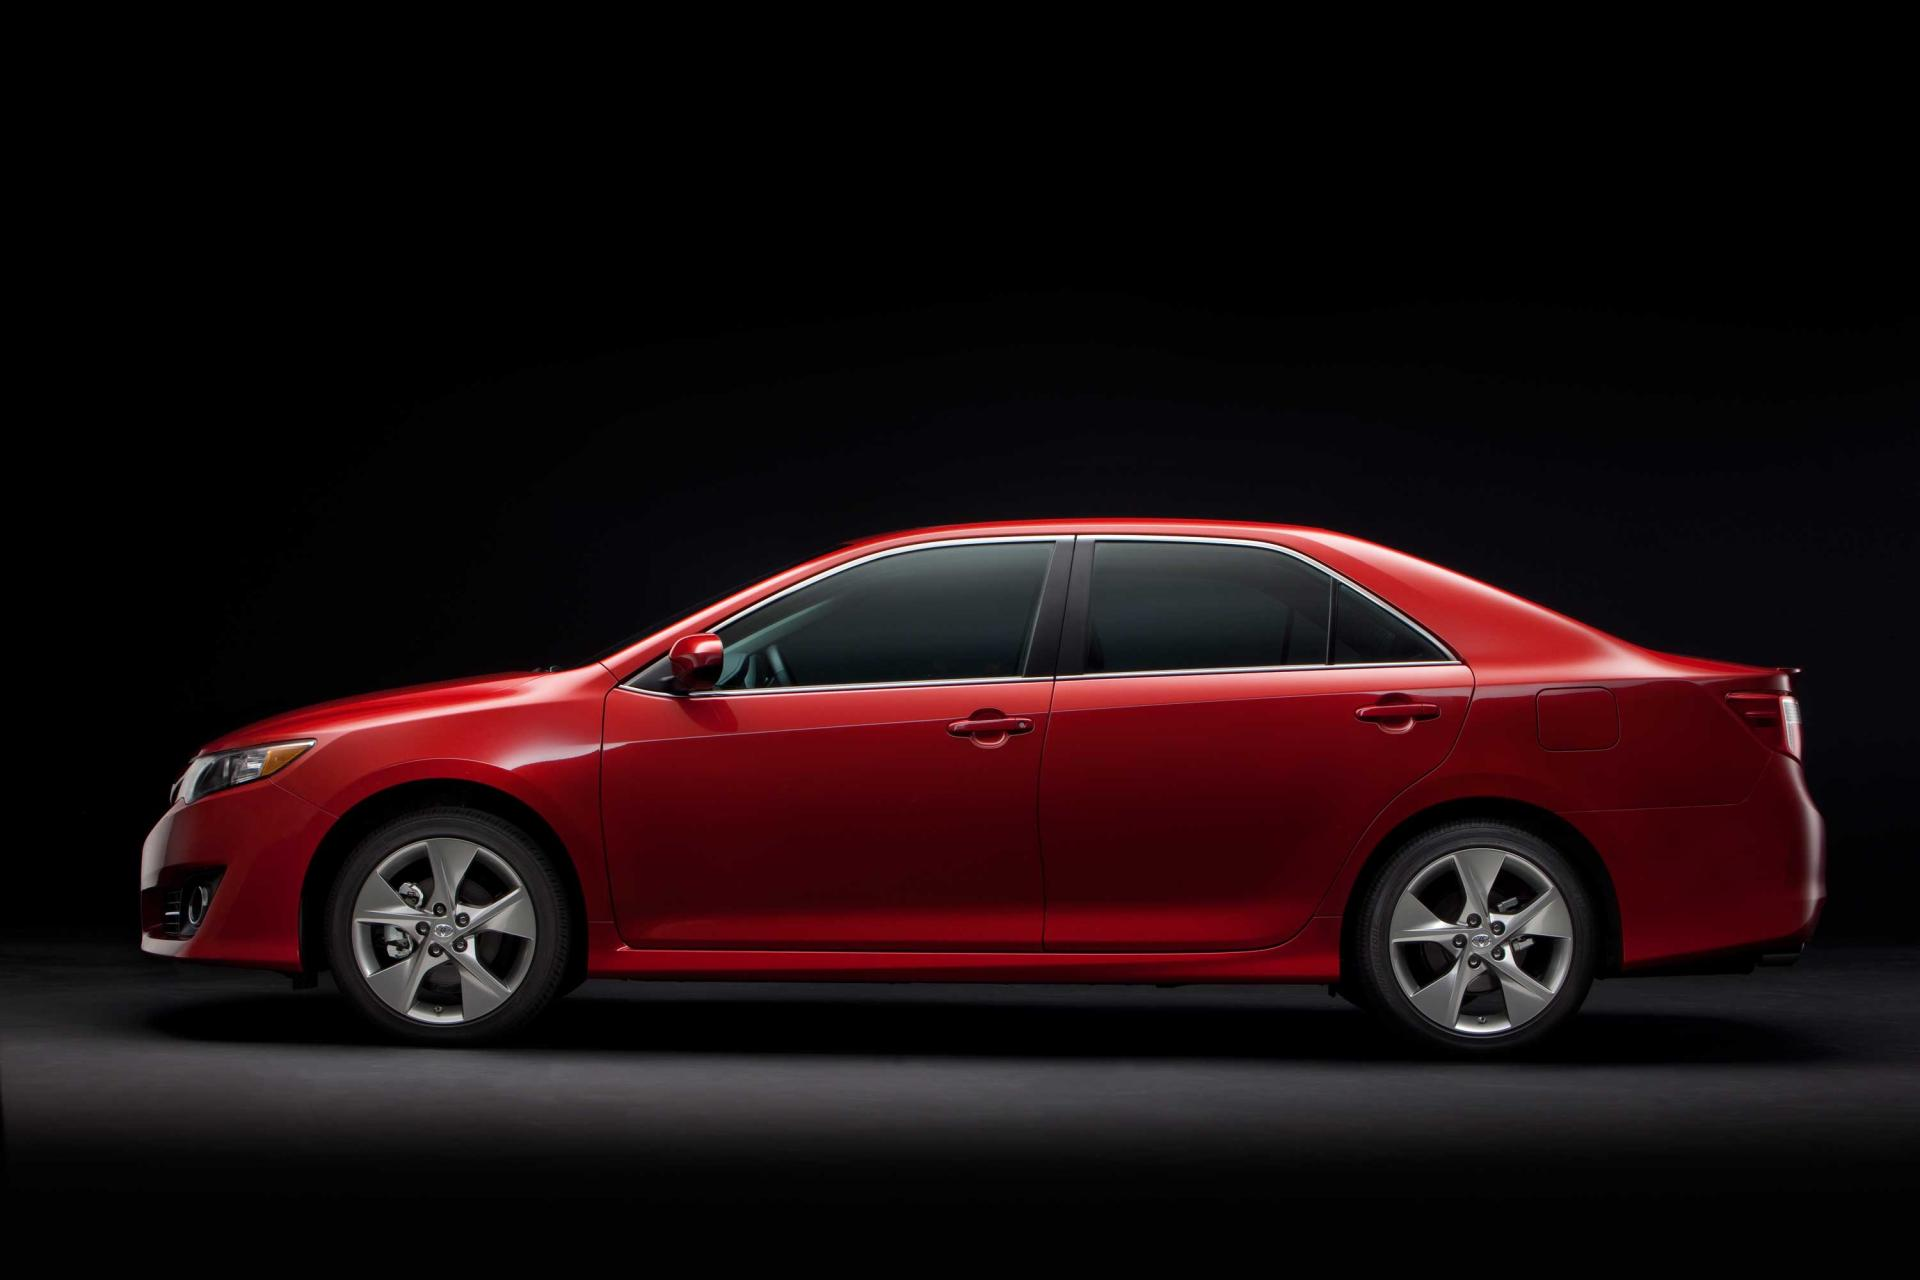 2012 toyota camry technical specifications and data. Black Bedroom Furniture Sets. Home Design Ideas